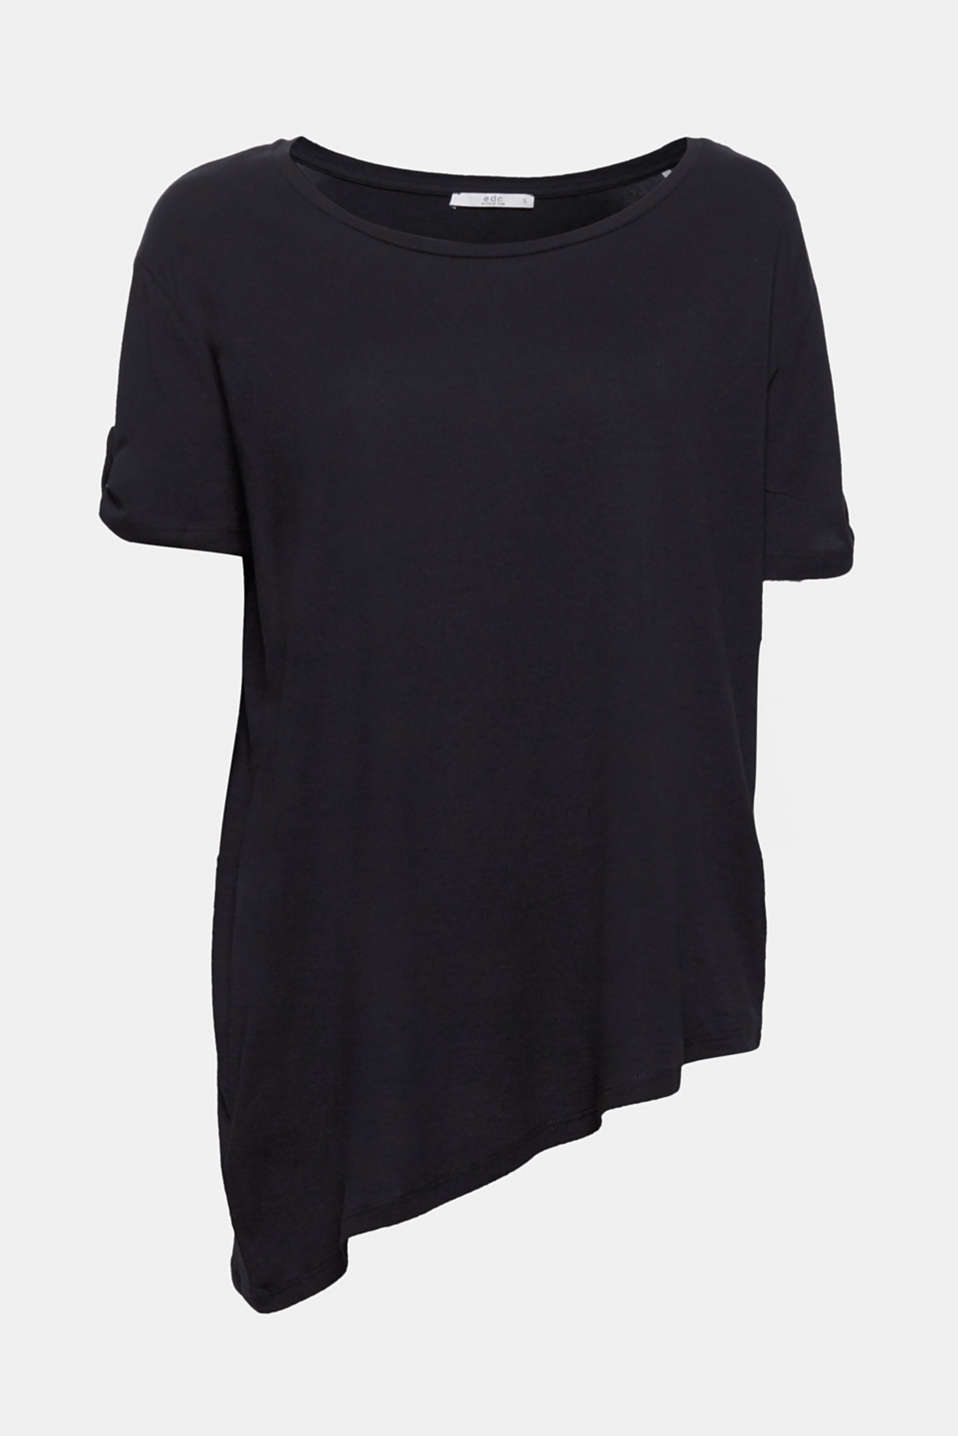 A T-shirt with the genuine wow factor! Thanks to the sophisticated, asymmetric cut, this T-shirt is a genuine style hit.